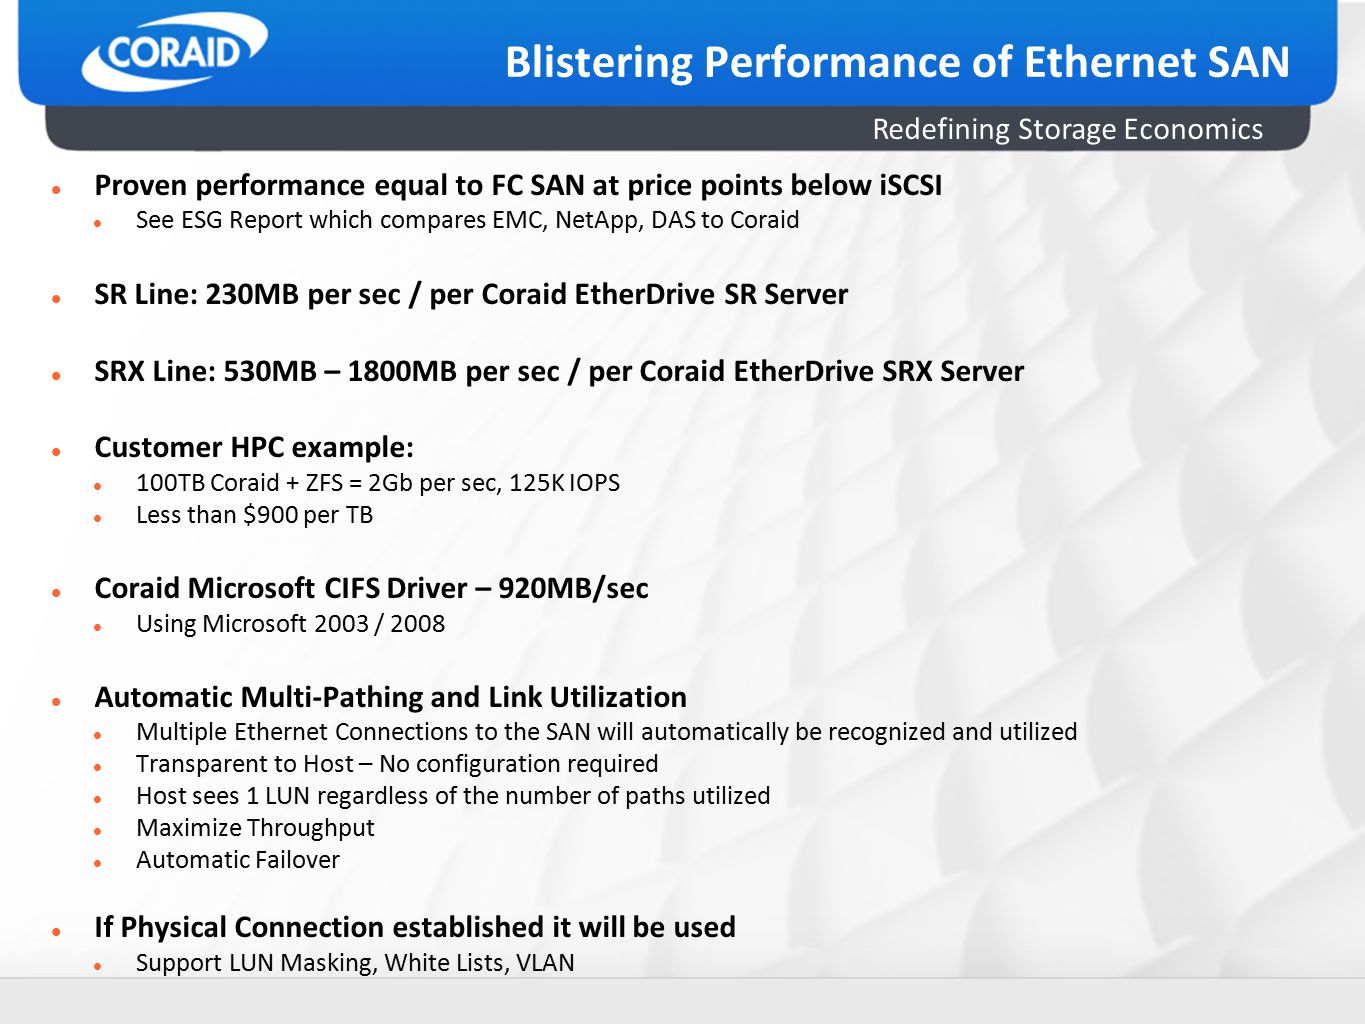 Redefining Storage Economics Blistering Performance of Ethernet SAN Proven performance equal to FC SAN at price points below iSCSI See ESG Report which compares EMC, NetApp, DAS to Coraid SR Line: 230MB per sec / per Coraid EtherDrive SR Server SRX Line: 530MB – 1800MB per sec / per Coraid EtherDrive SRX Server Customer HPC example: 100TB Coraid + ZFS = 2Gb per sec, 125K IOPS Less than $900 per TB Coraid Microsoft CIFS Driver – 920MB/sec Using Microsoft 2003 / 2008 Automatic Multi-Pathing and Link Utilization Multiple Ethernet Connections to the SAN will automatically be recognized and utilized Transparent to Host – No configuration required Host sees 1 LUN regardless of the number of paths utilized Maximize Throughput Automatic Failover If Physical Connection established it will be used Support LUN Masking, White Lists, VLAN